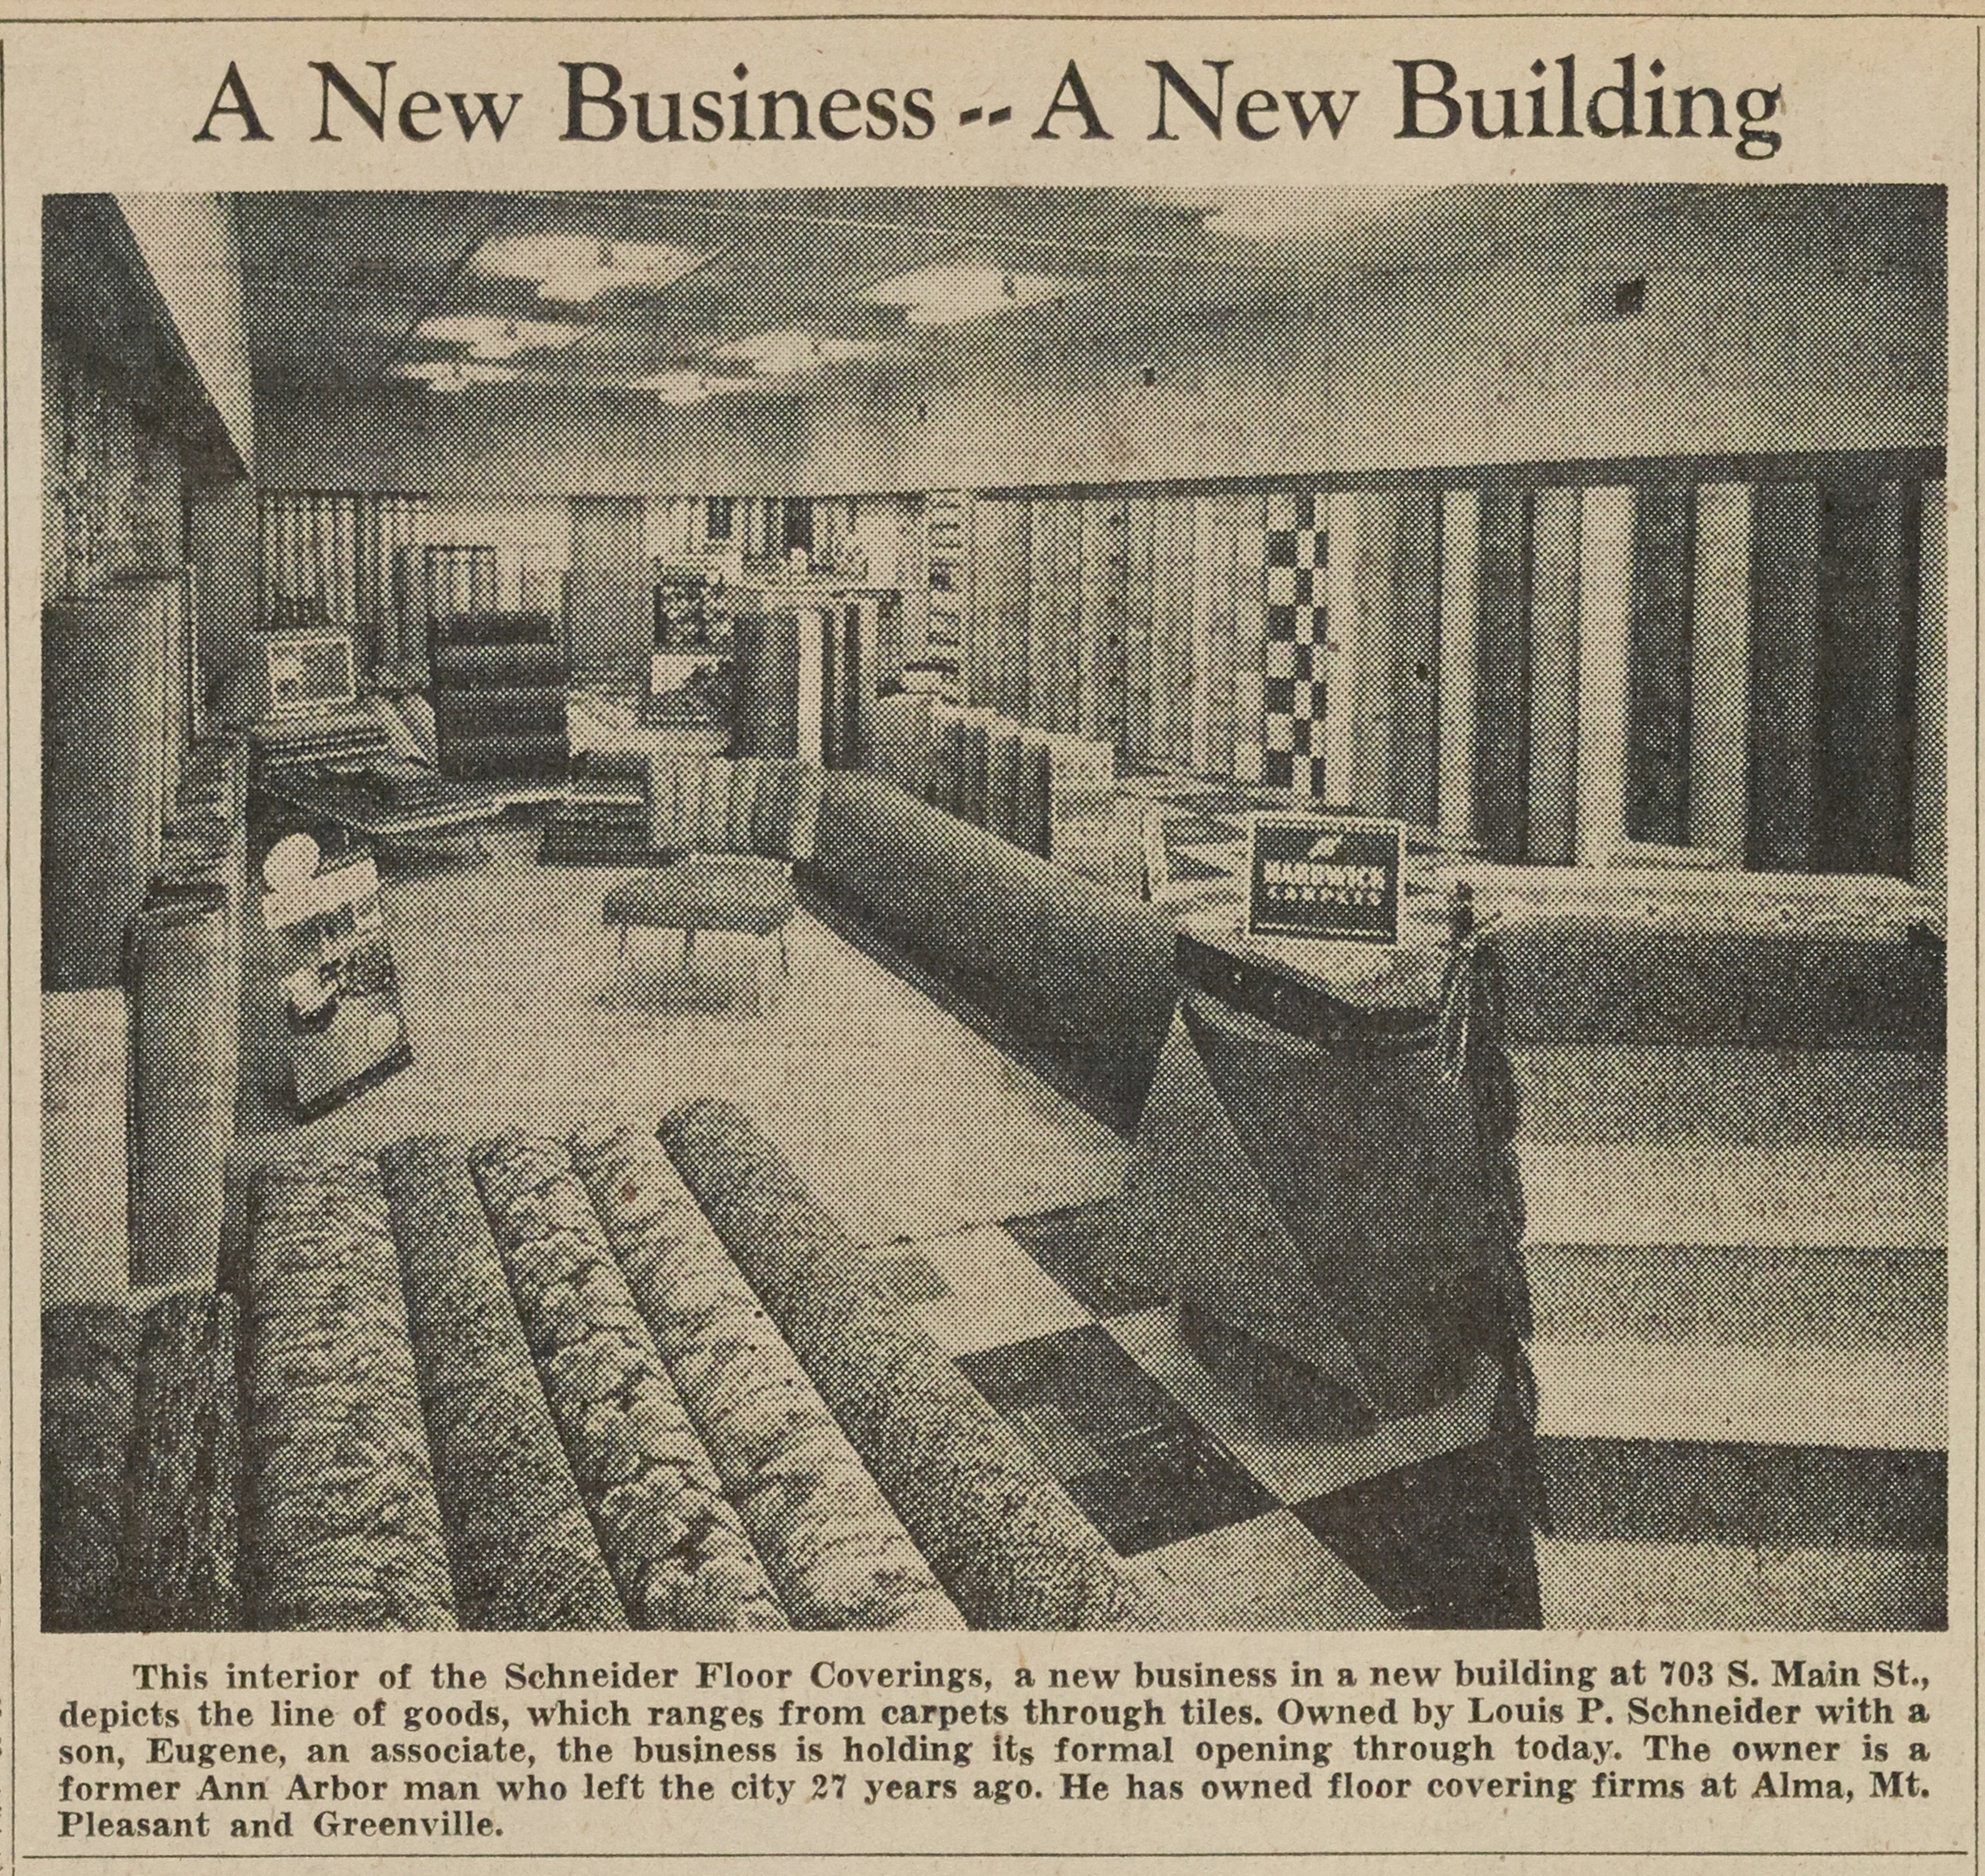 A New Business - - A New Building image